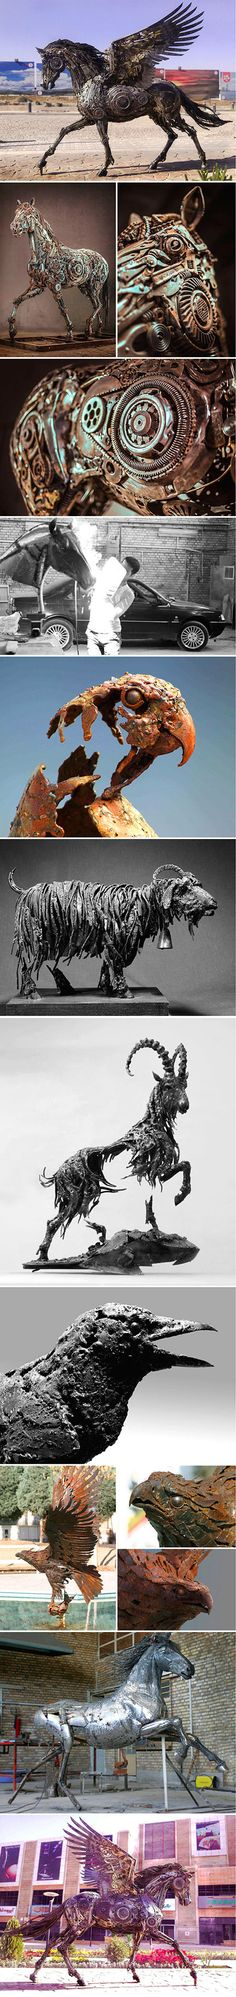 Hasan Novrozi, a talented sculptor trained in Iran, has created a wonderful collection of steampunk animals sculptures that are full of life and emotion – despite being painstakingly assembled from thousands of metal tools, automotive components, and other pieces of scrap metal.